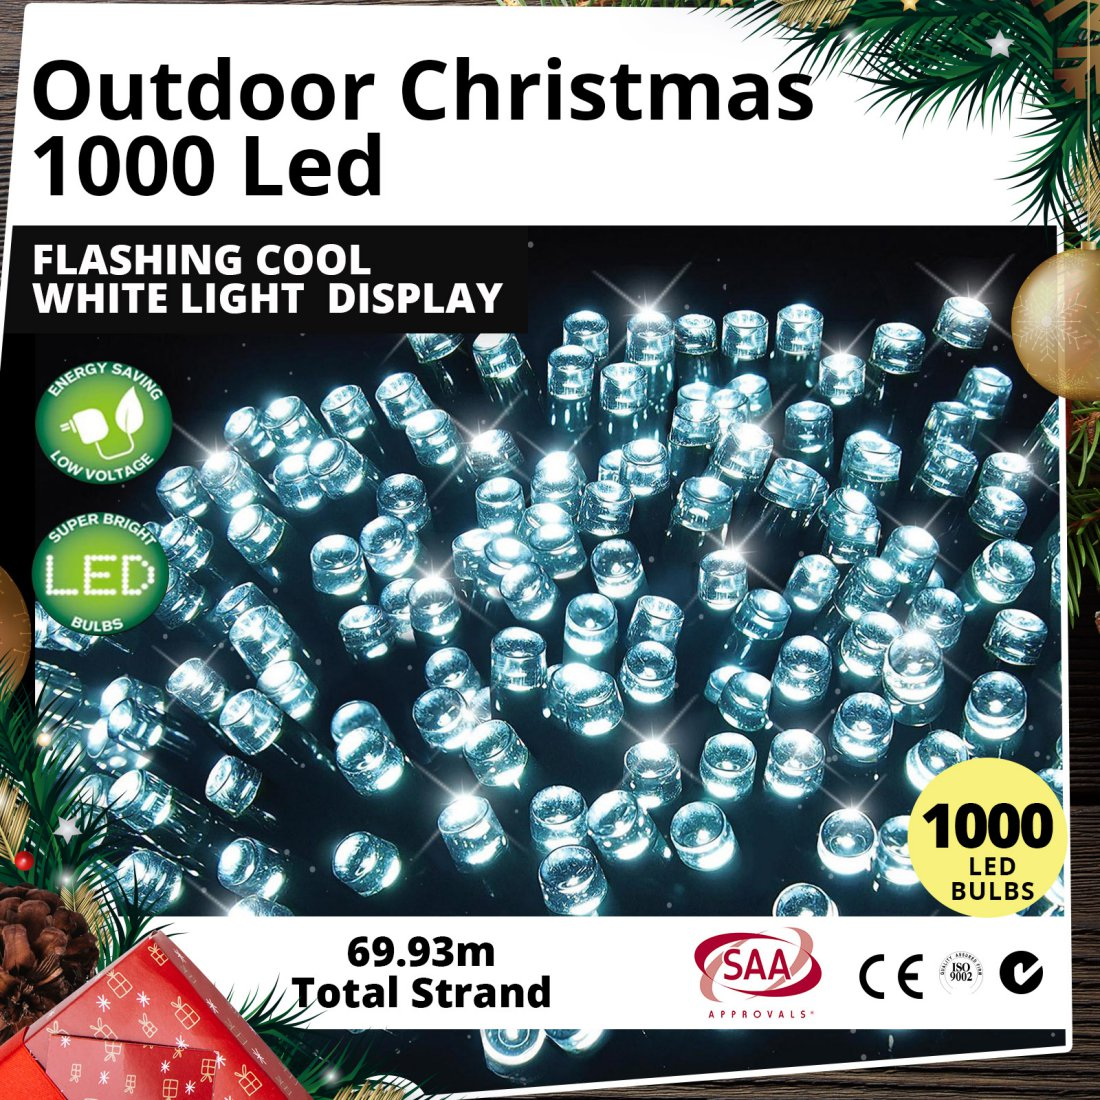 Outdoor 1000 LED Flashing Cool White Light Christmas Display